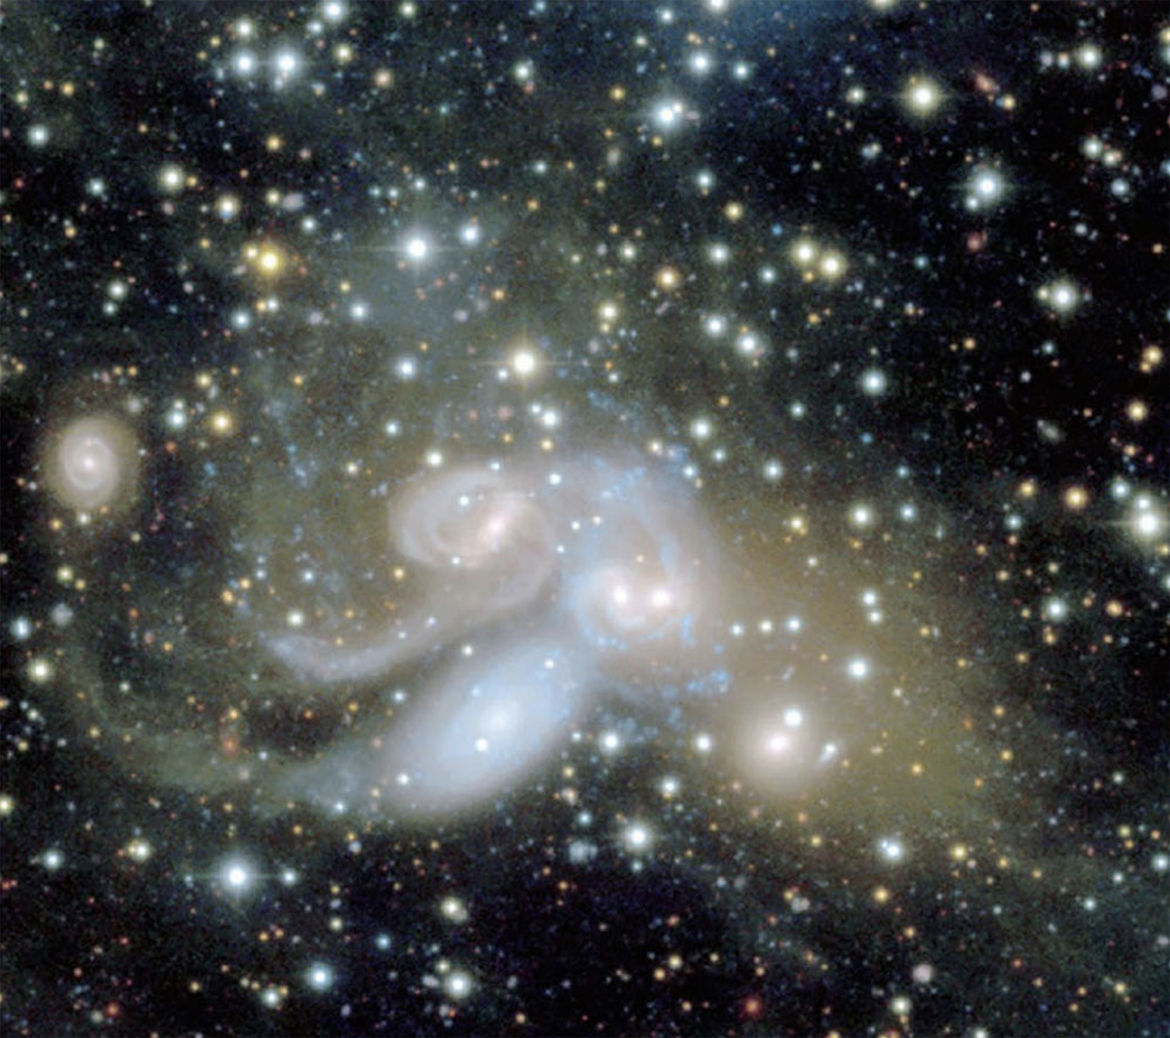 A close-up on the group of galaxies called Stephan's Quintet, with the contrast stretched to show faint diffuse material. Credit: CFHT, Pierre-Alain Duc (Observatoire de Strasbourg) & Jean-Charles Cuillandre (CEA Saclay/Obs. de Paris).